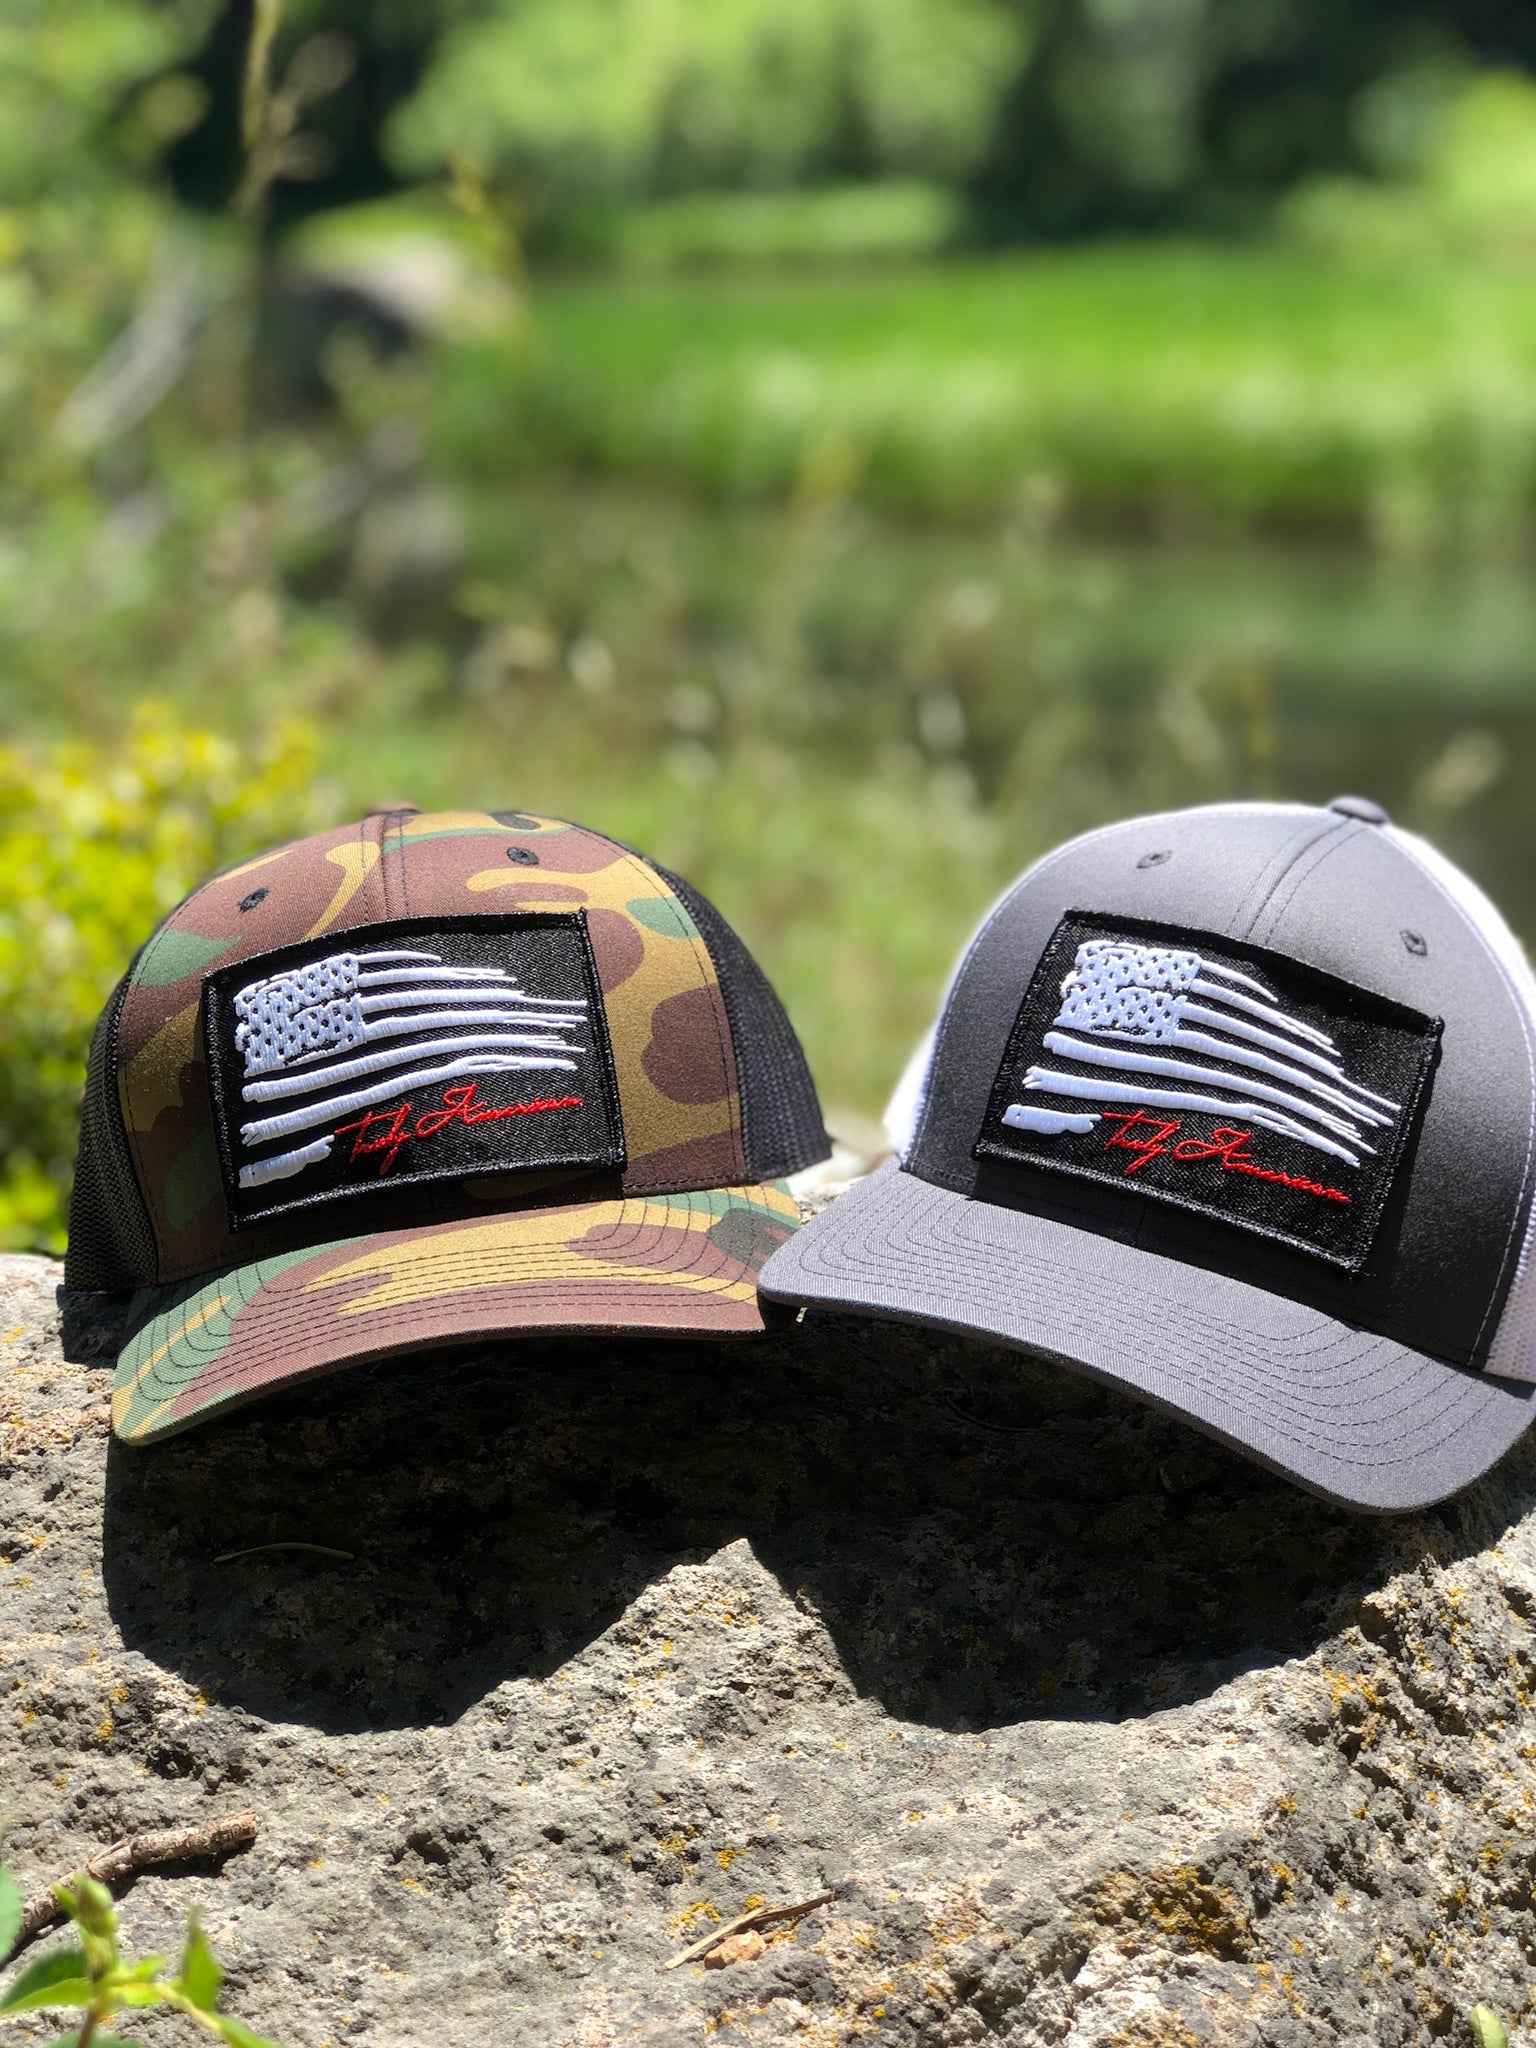 Truly American Apparel is an exclusive line of patriotic and veteran apparel, branded to support the people who built the foundation of our country.